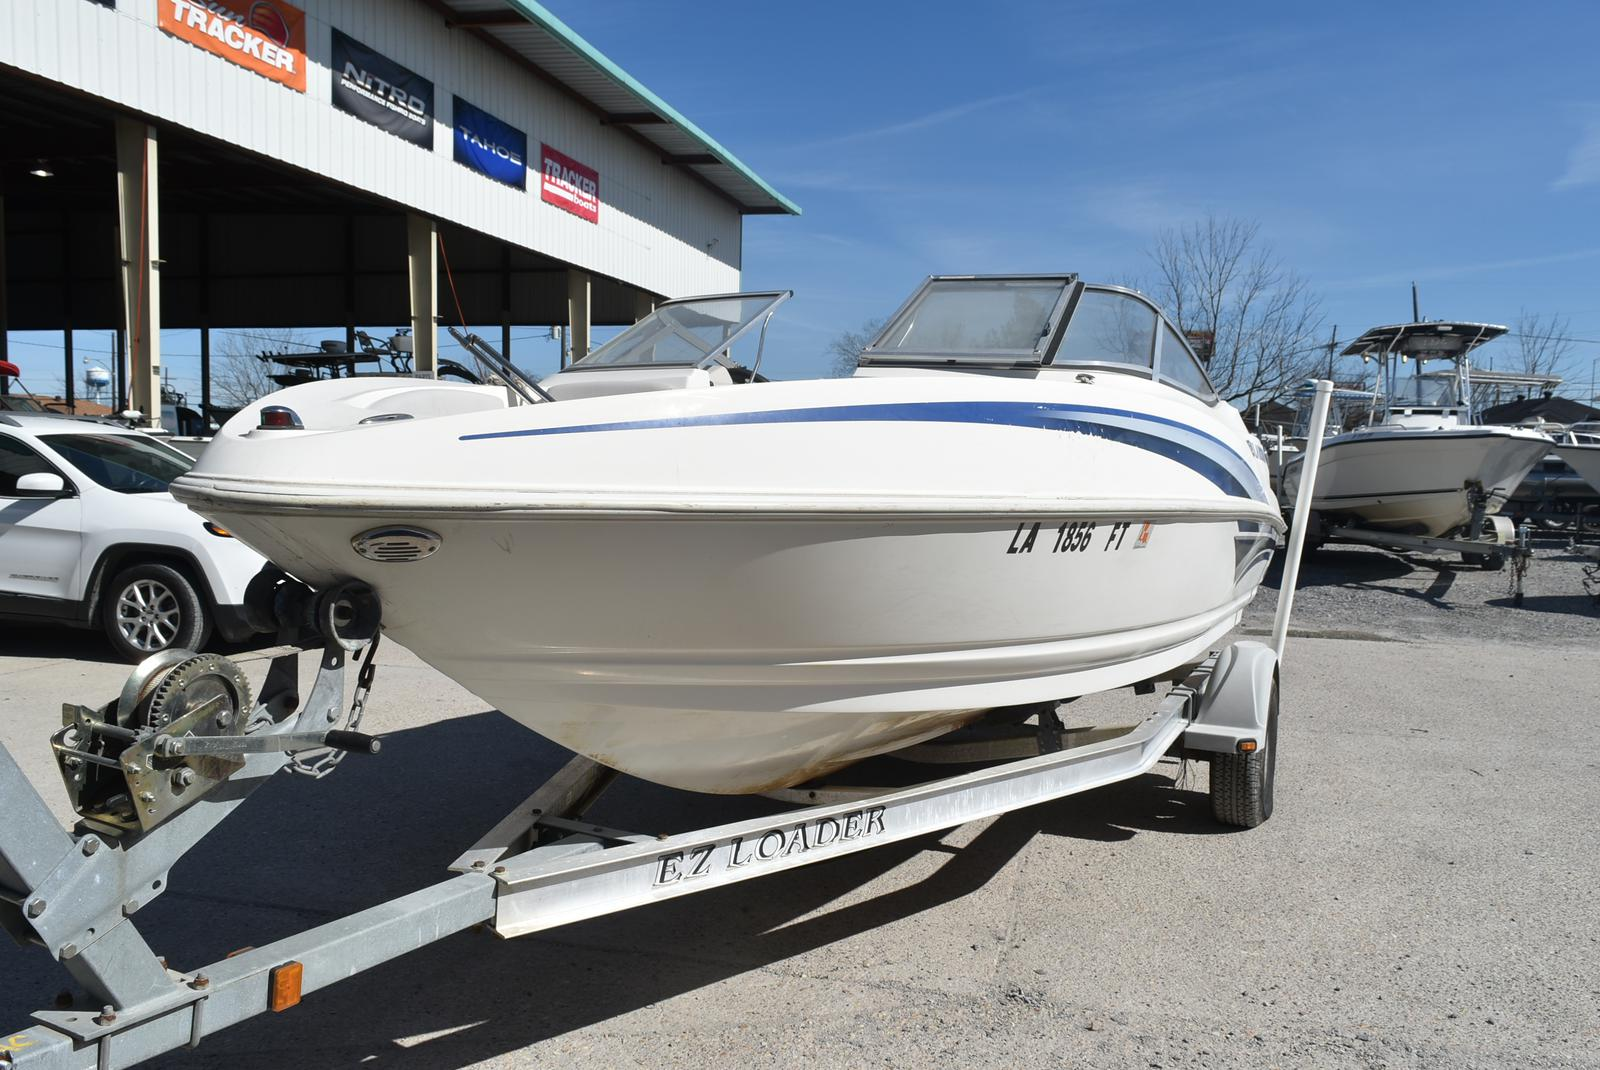 2007 Larson boat for sale, model of the boat is Senza 186 & Image # 3 of 15